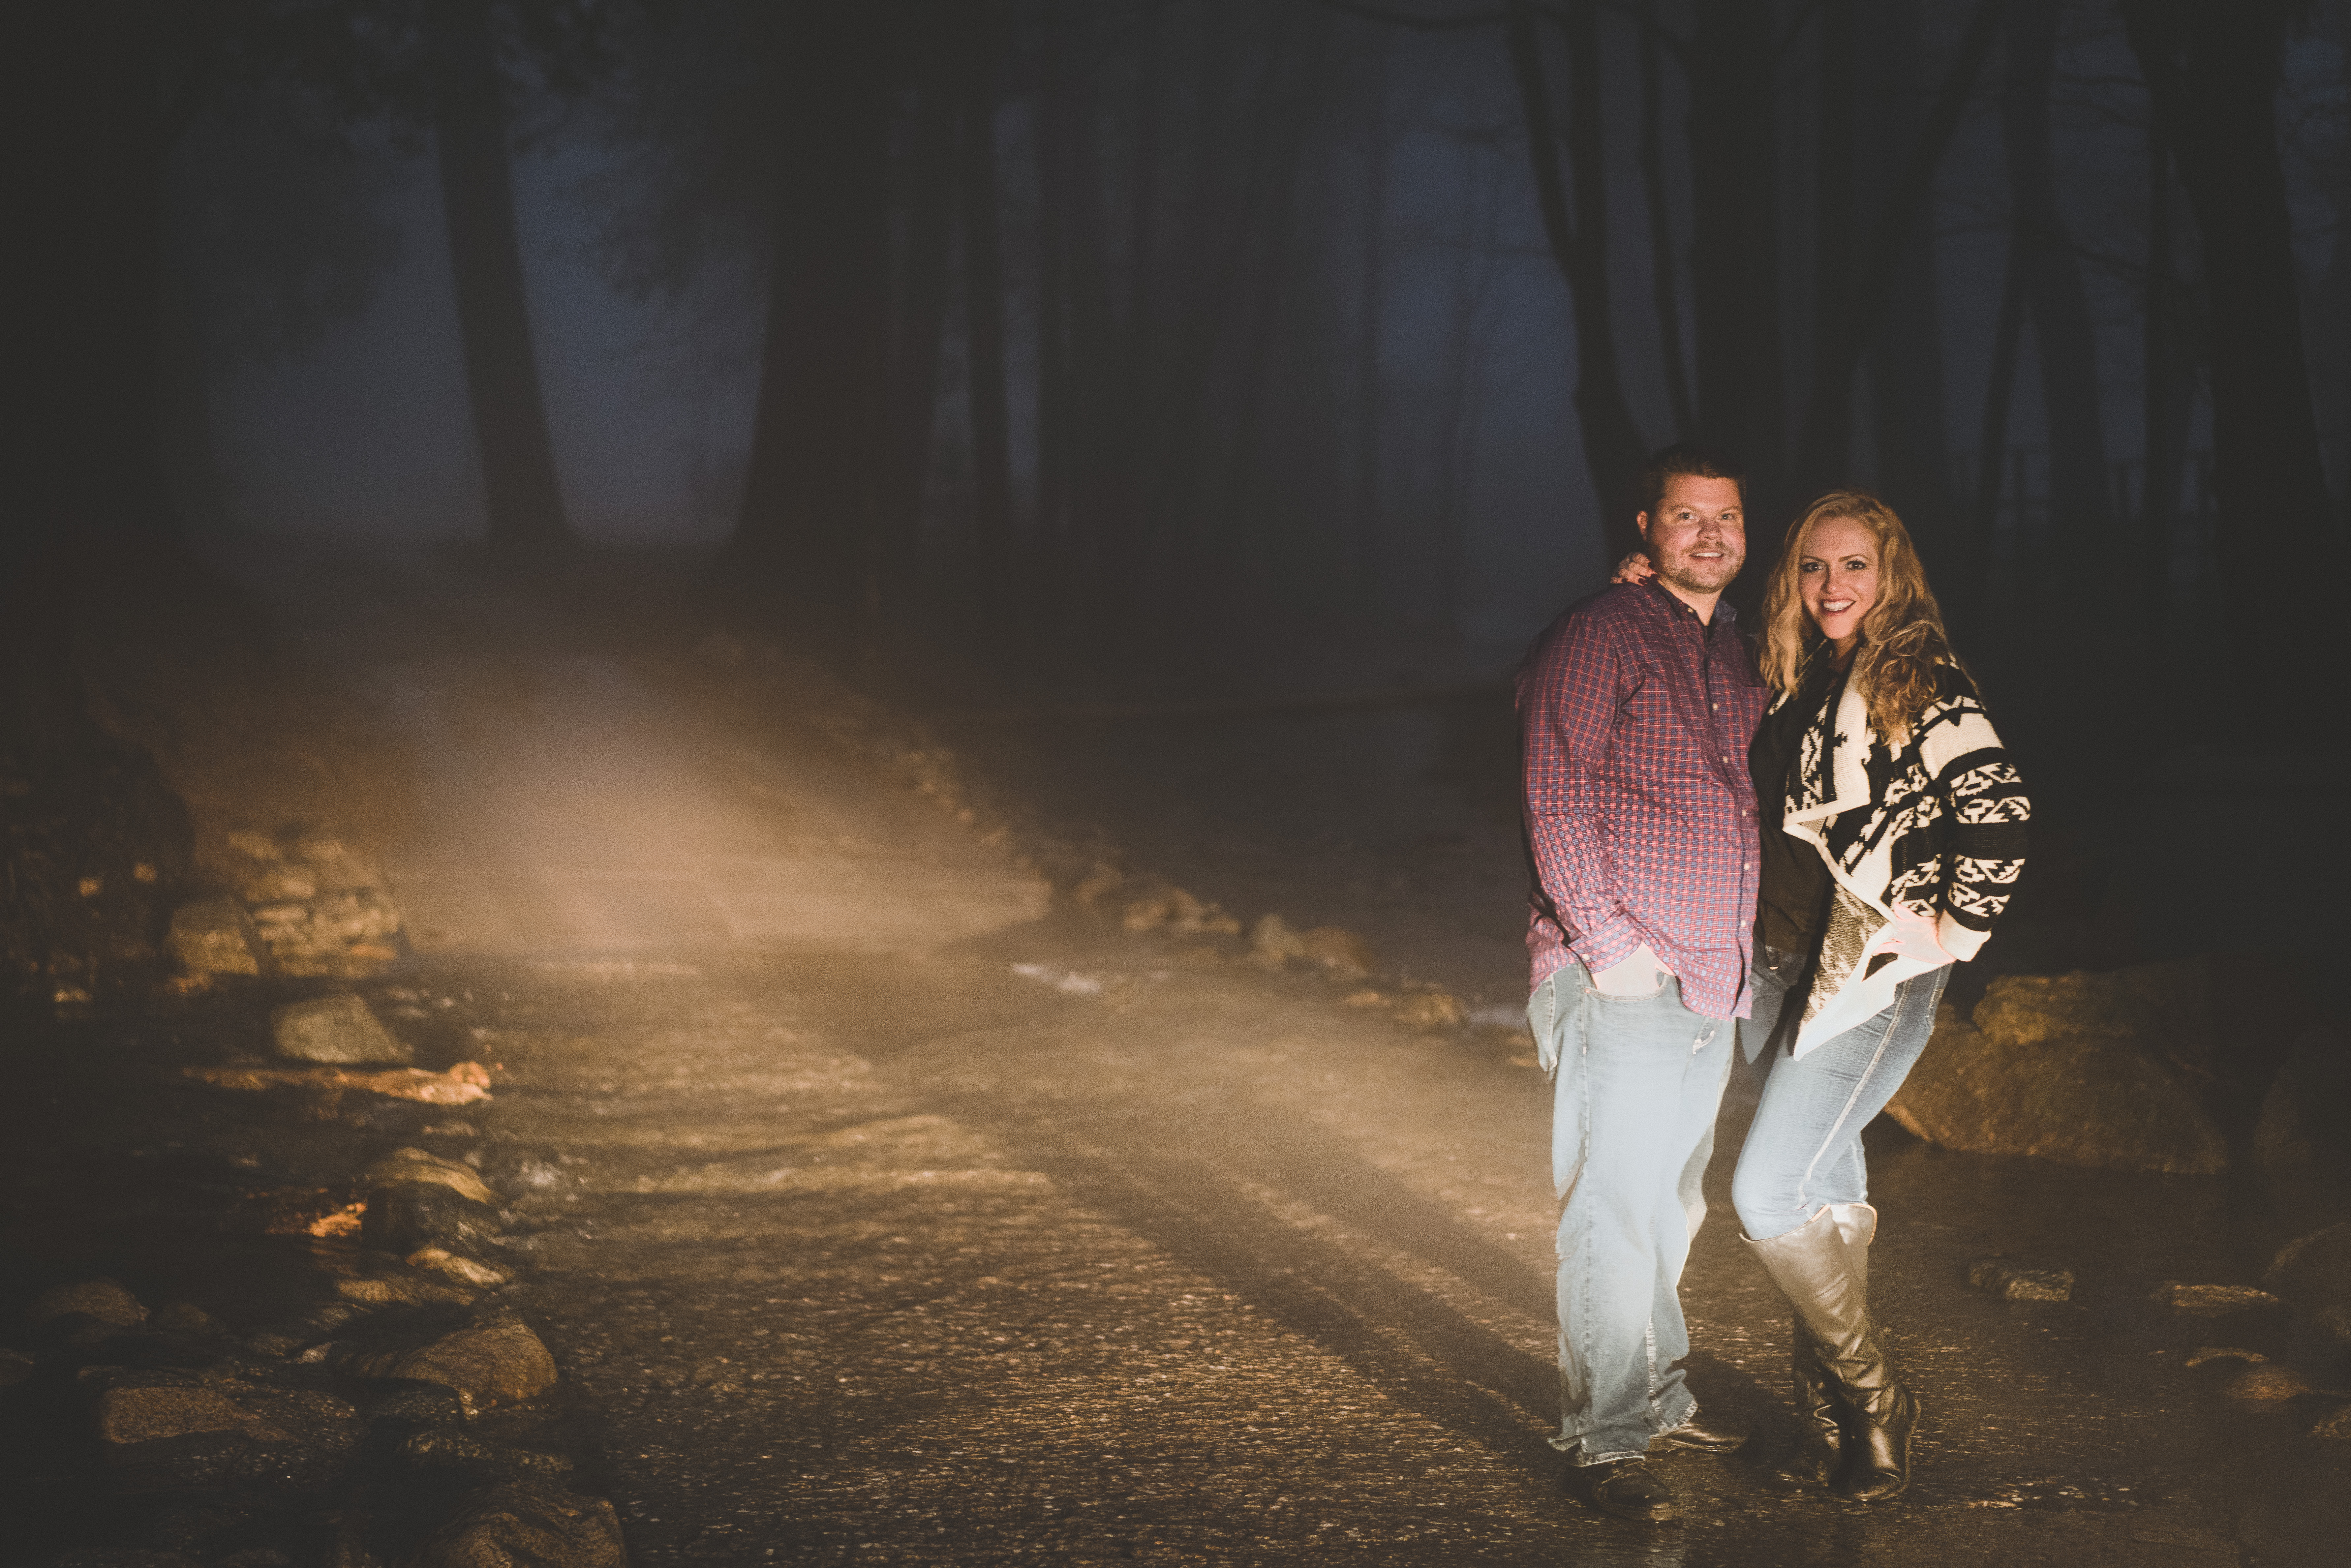 Moody Night Forest Engagement Photos